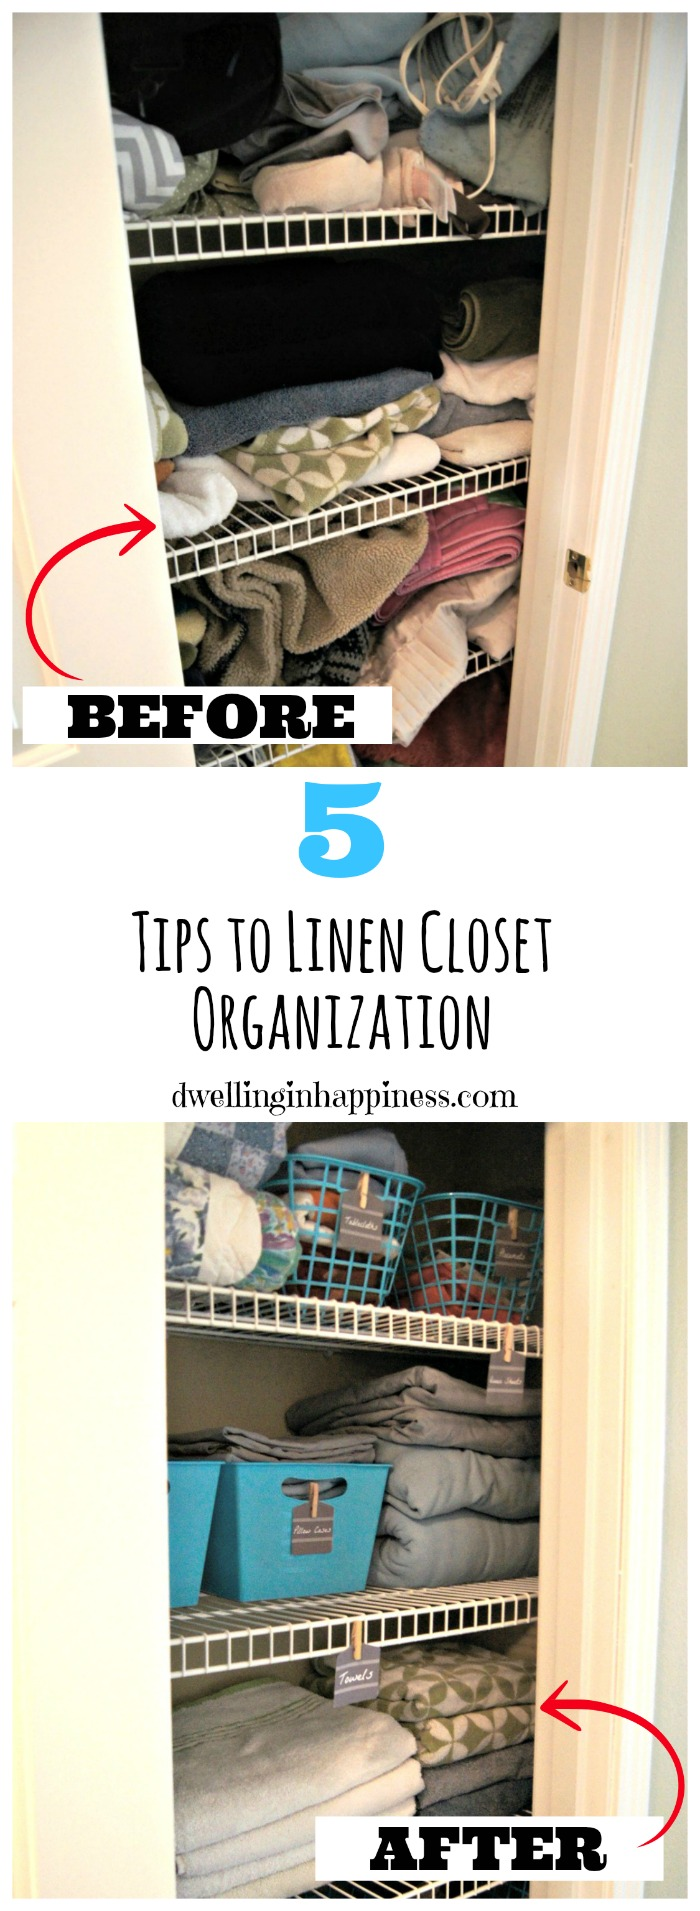 5 Tips To Organizing Your Linen Closet Like A Boss